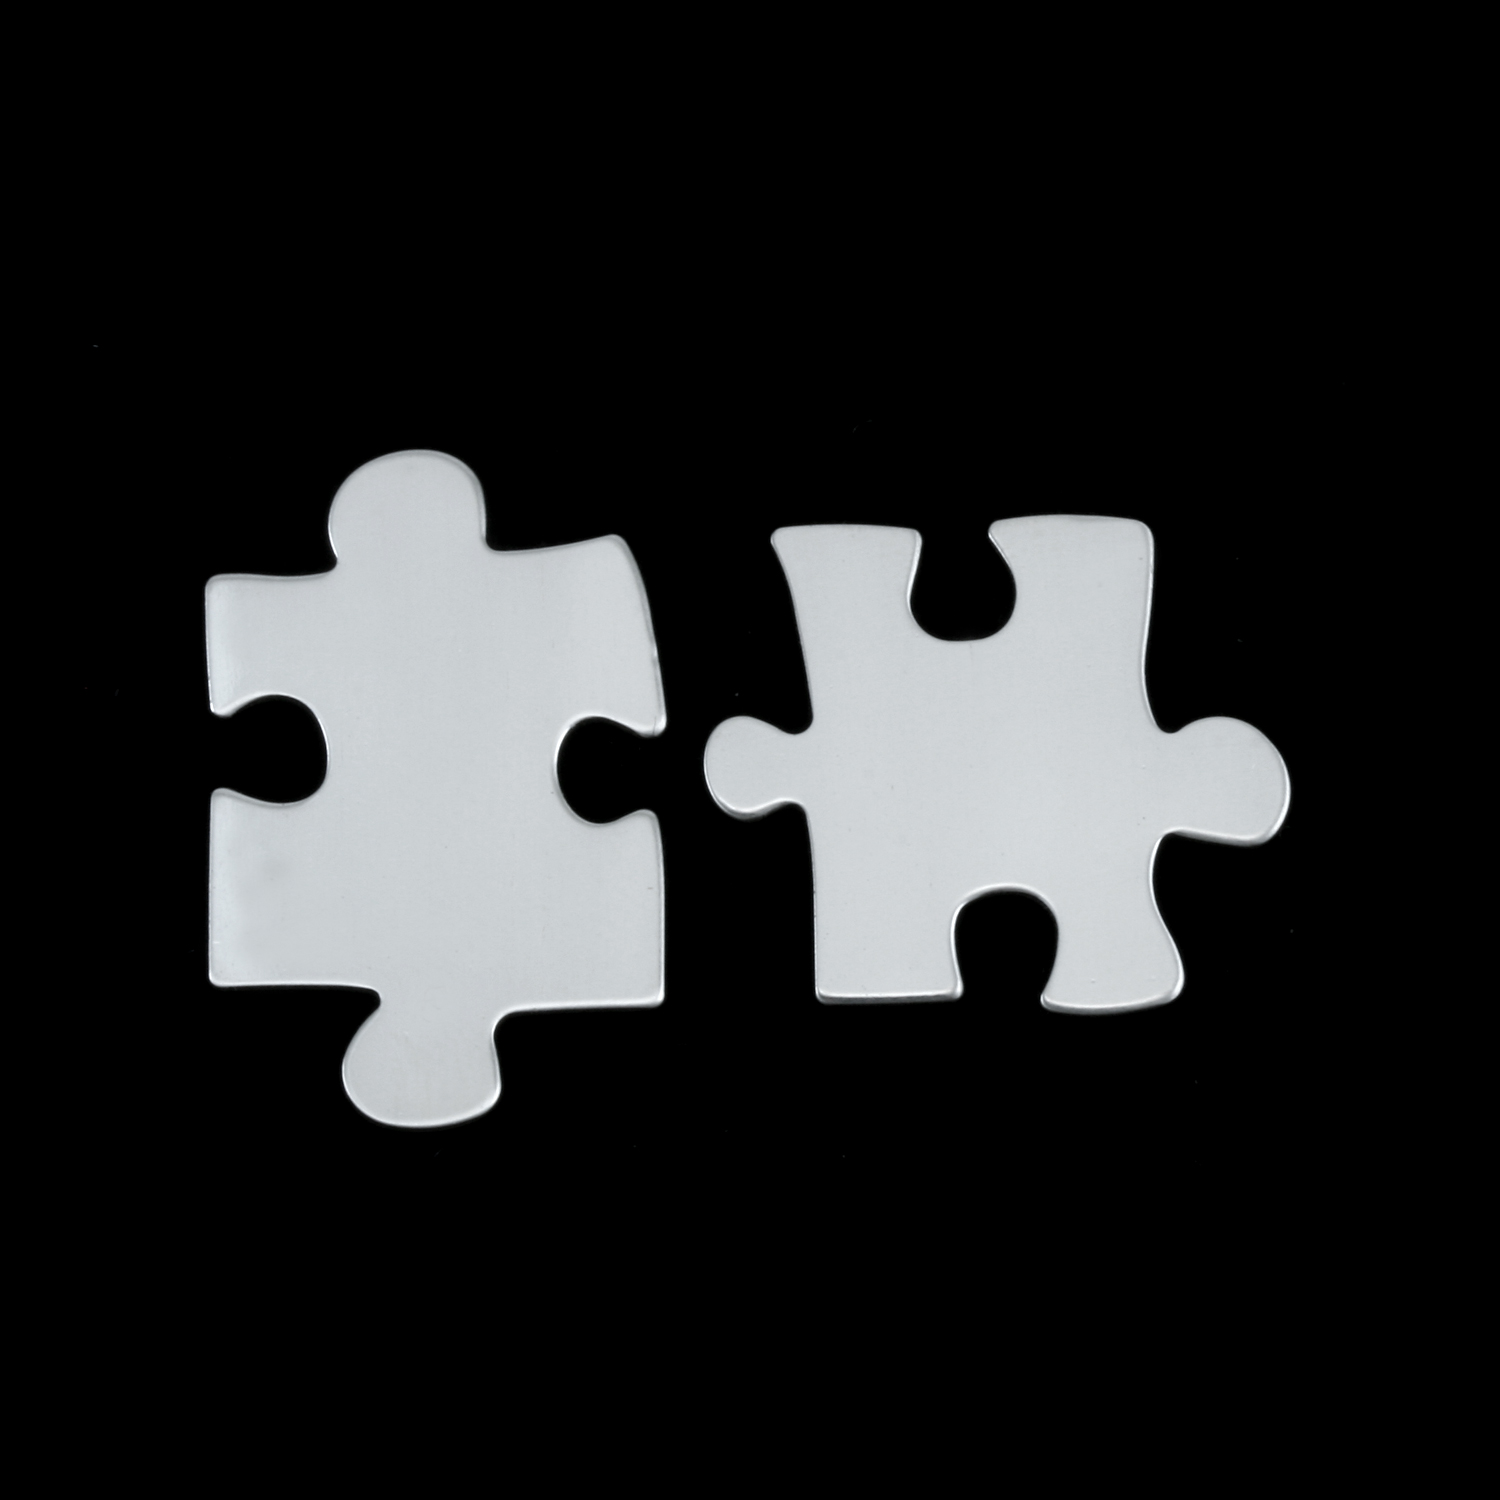 Sterling Silver Paired Puzzle Pieces, 24g